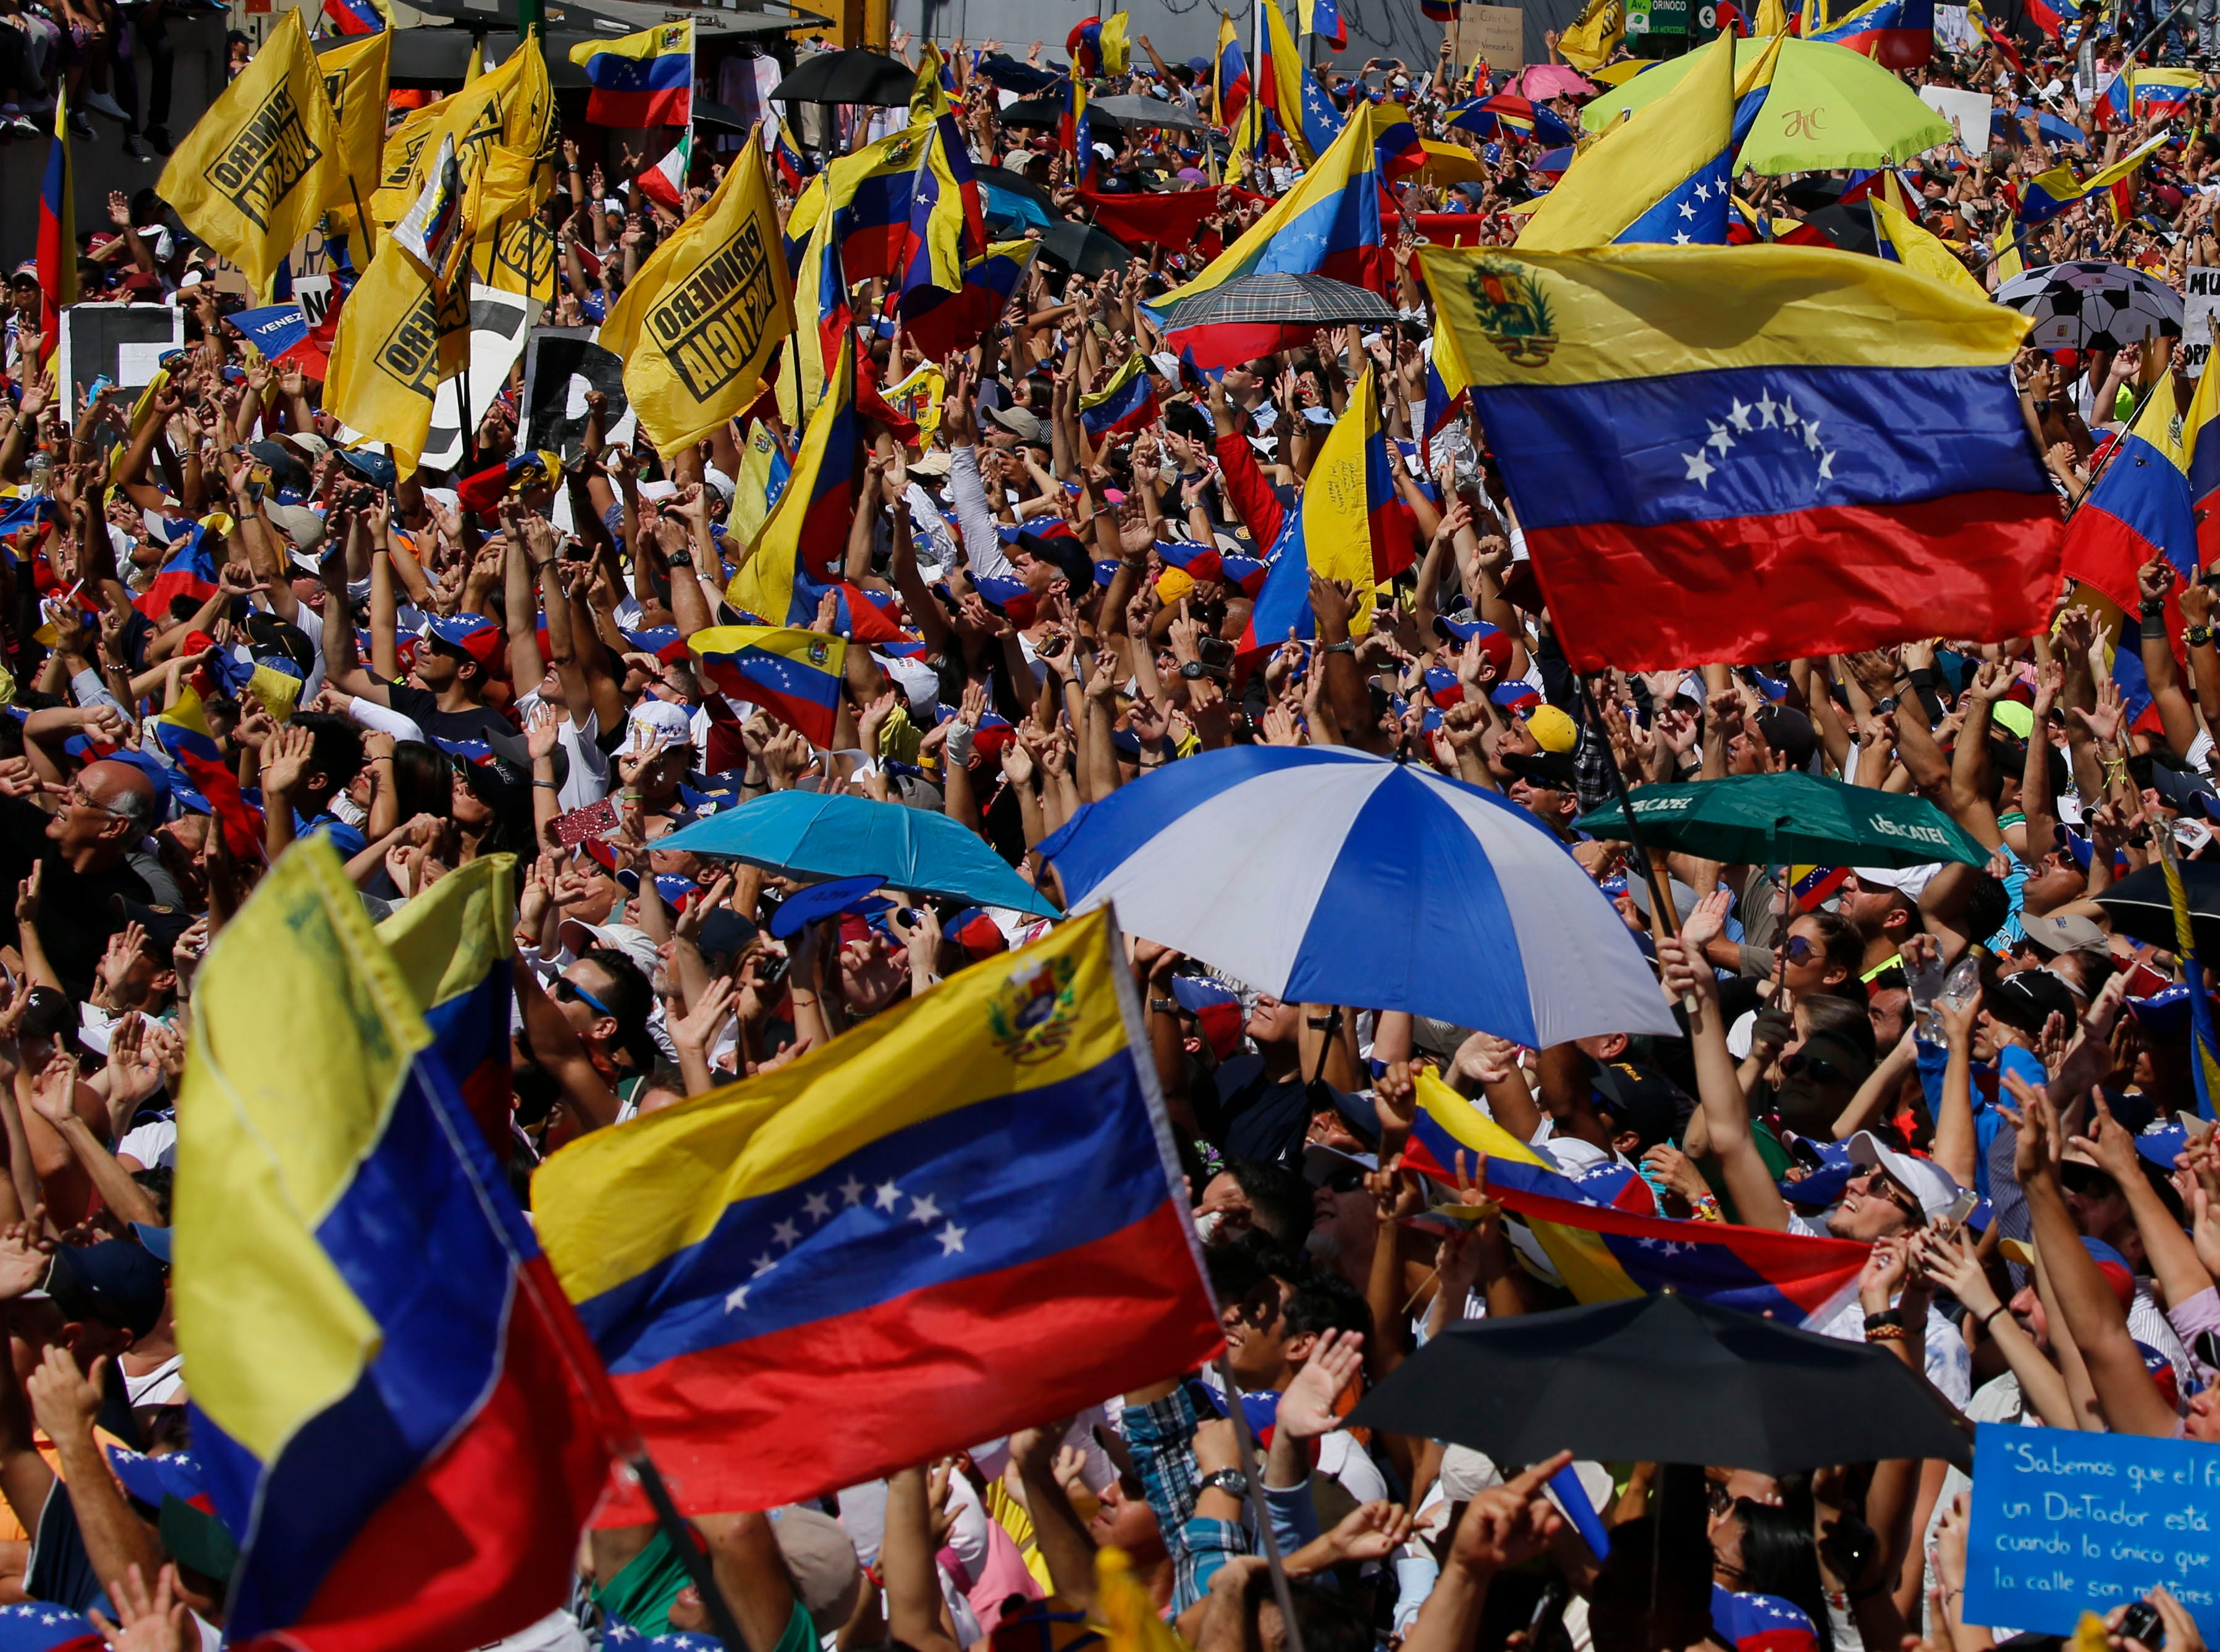 Anti-government protesters gather for the start of a nationwide demonstration demanding the resignation of President Nicolas Maduro, in Caracas, Venezuela, Saturday, Feb. 2, 2019.